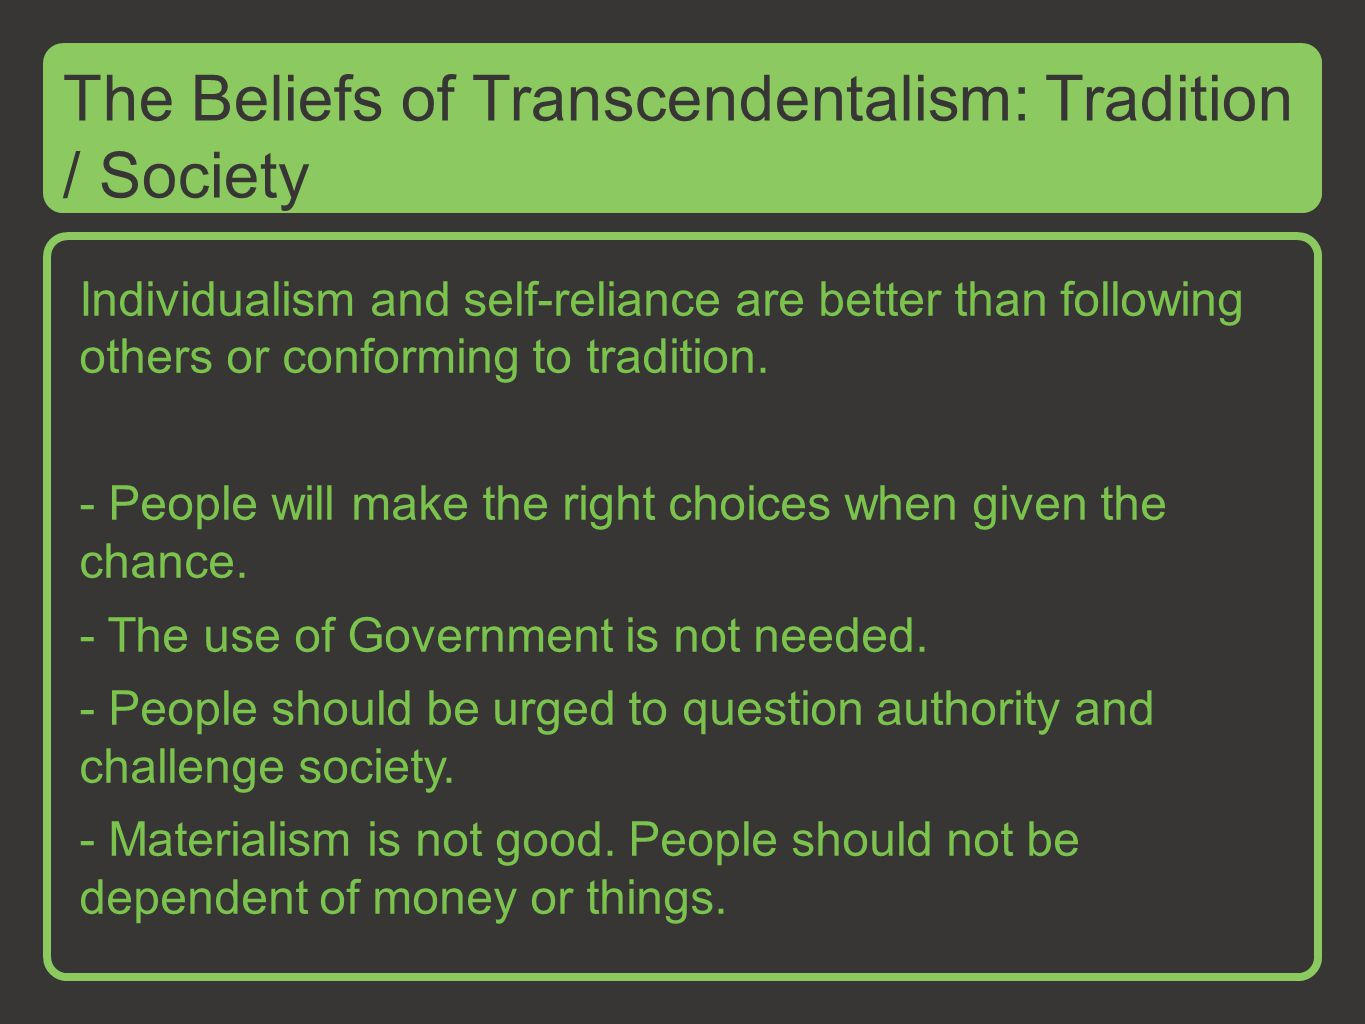 Individualism and self-reliance are better than following others or conforming to tradition.